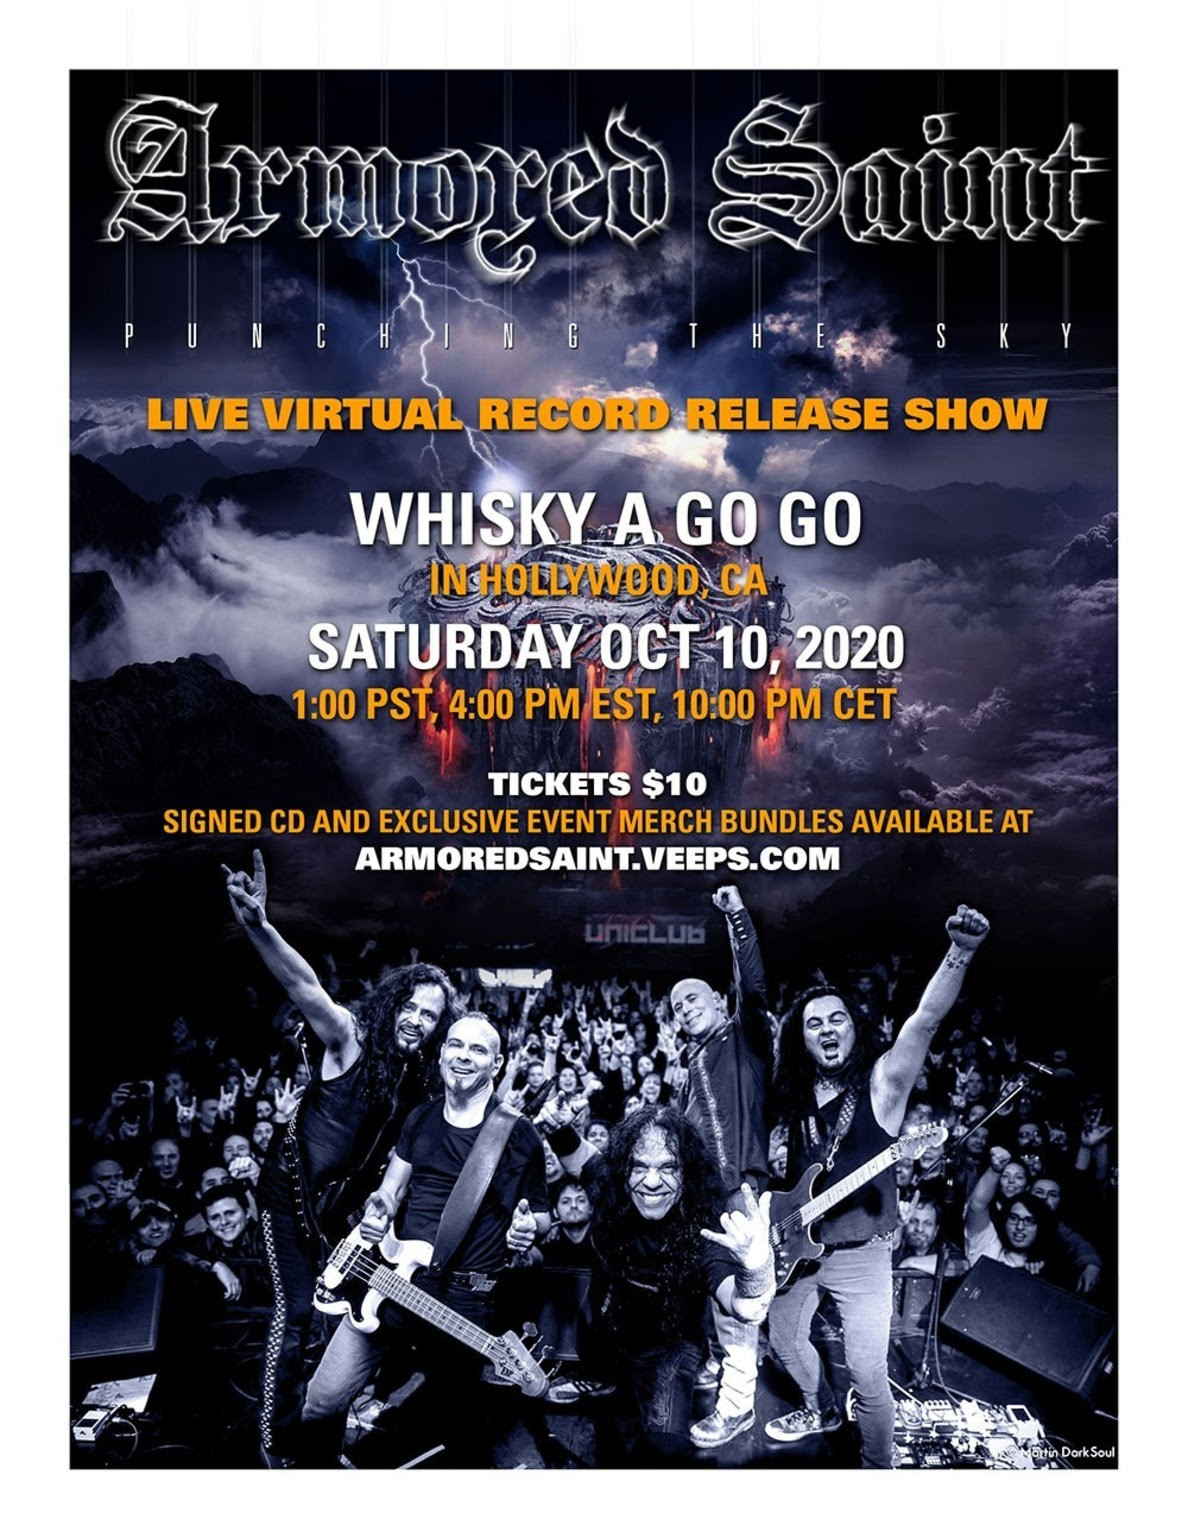 Armored Saint announces live record release show online, set for Saturday, October 10th 2020